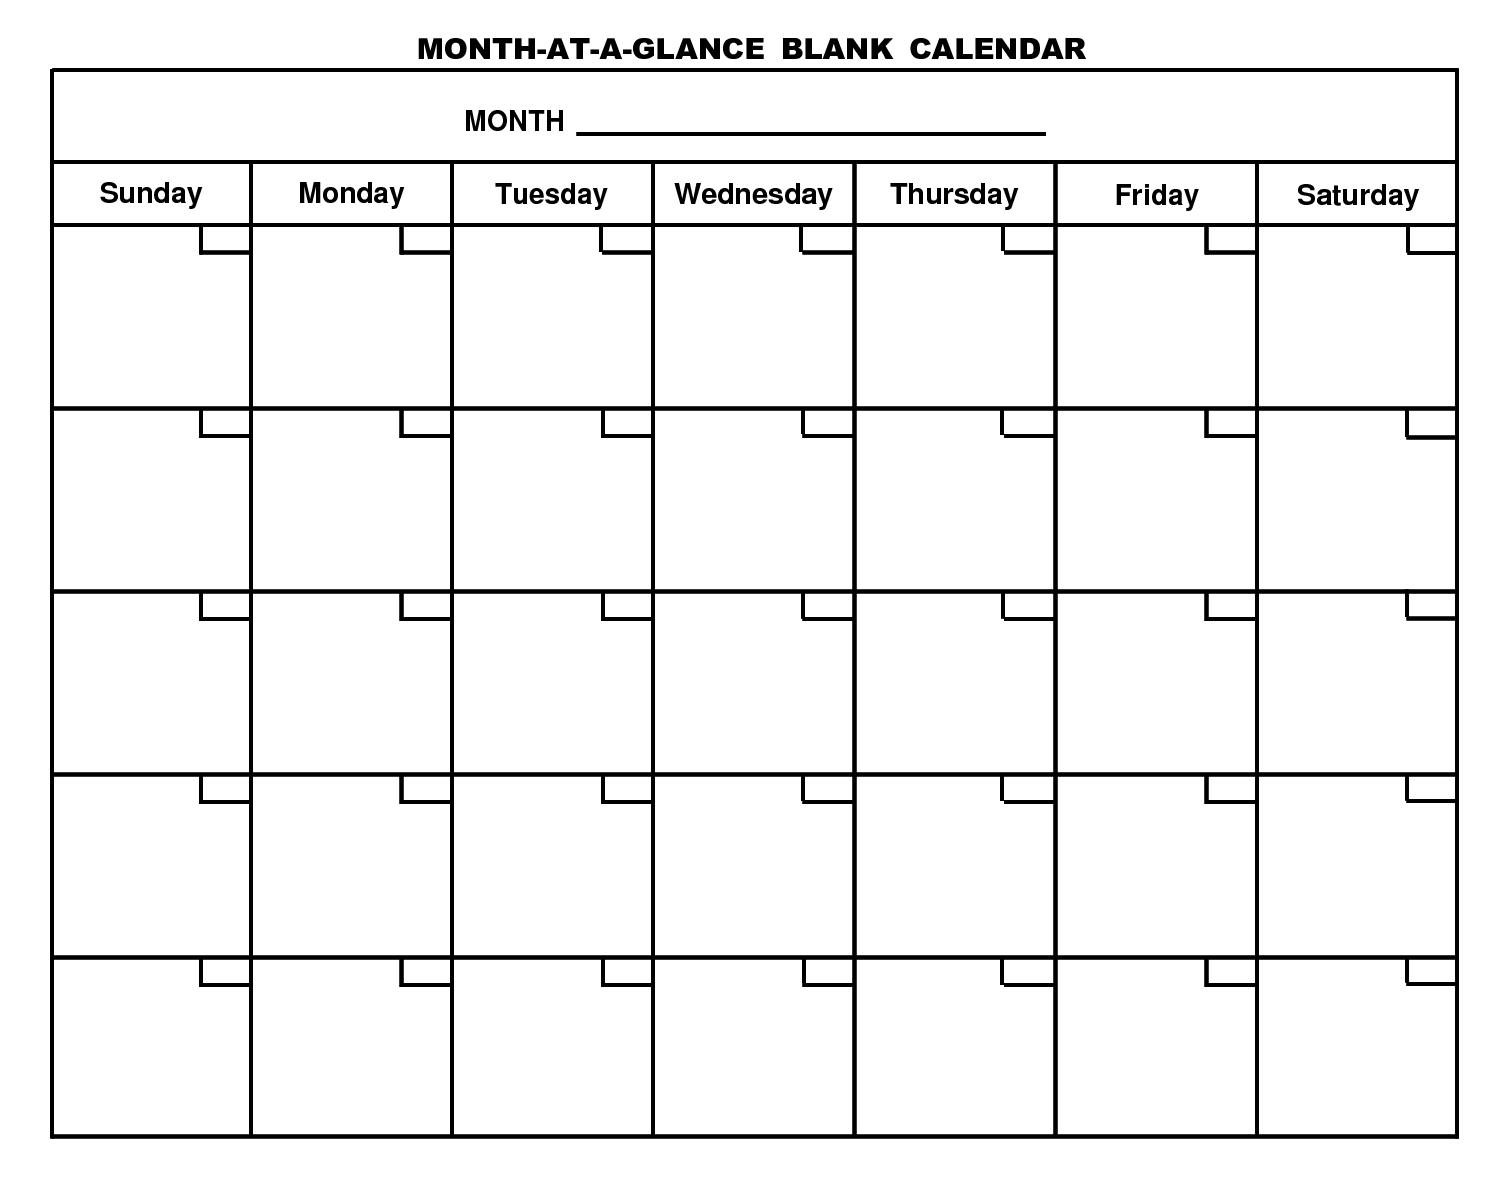 For Month At A Glance Blank Calendar Template - Free